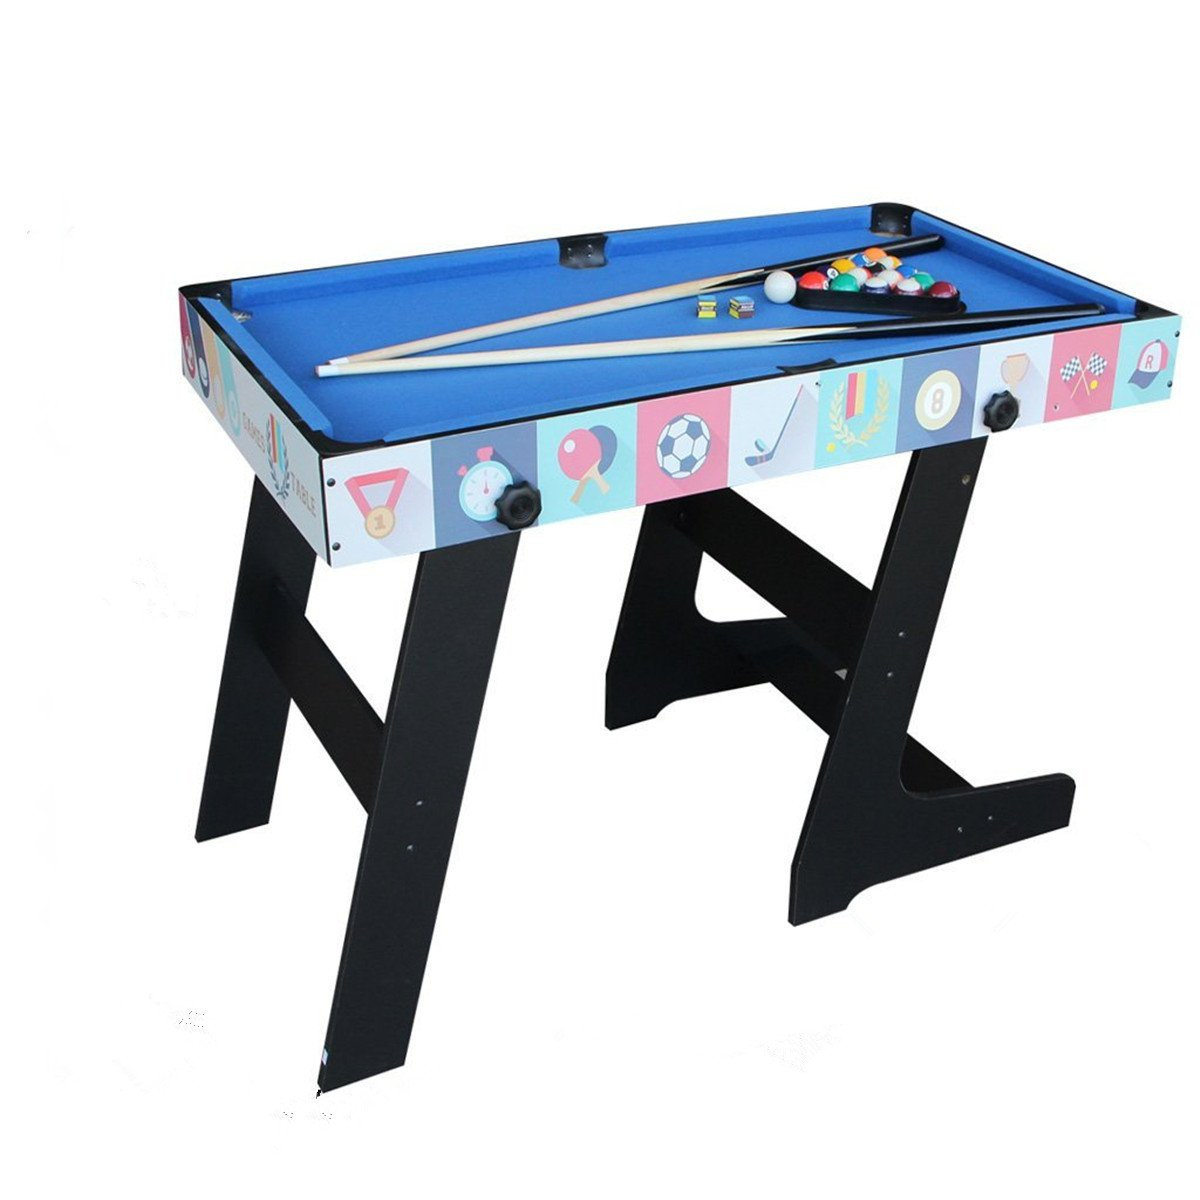 Deluxe 5 in 1 Top Game Table Folding Table-Table Tennis,Glide Hockey,Chess,Pool,Basketball Set by QYBK (Image #4)